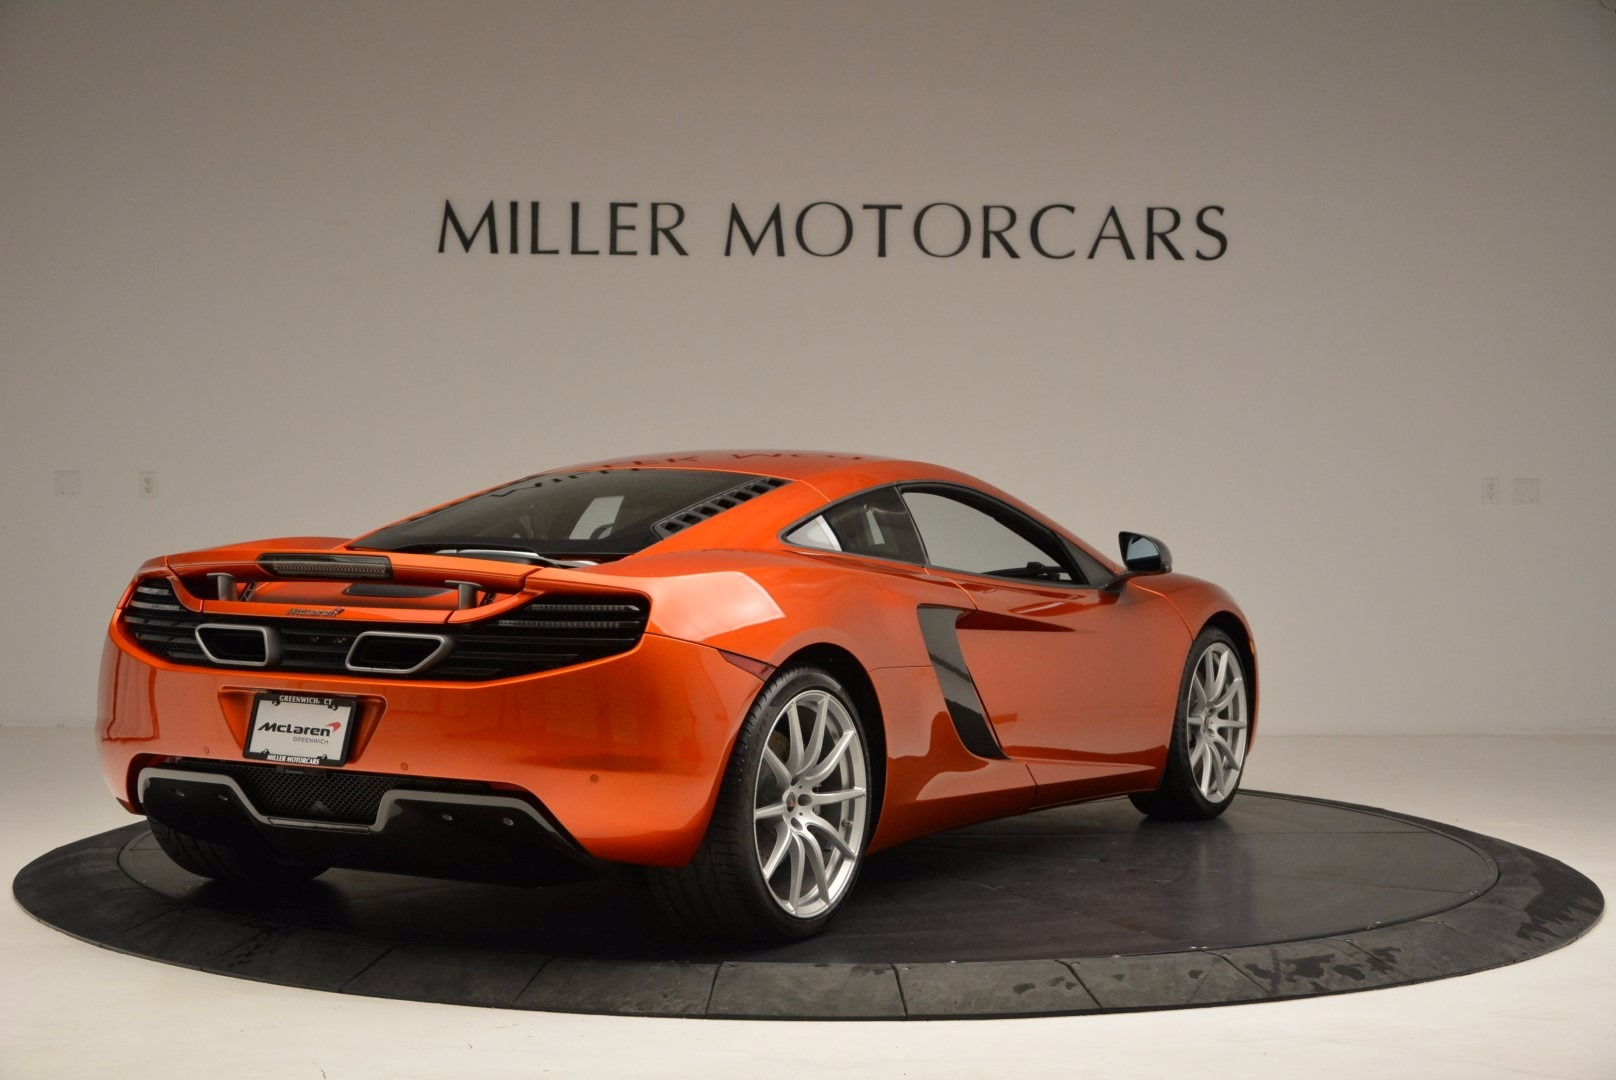 Used 2012 McLaren MP4-12C  For Sale In Greenwich, CT 1035_p7